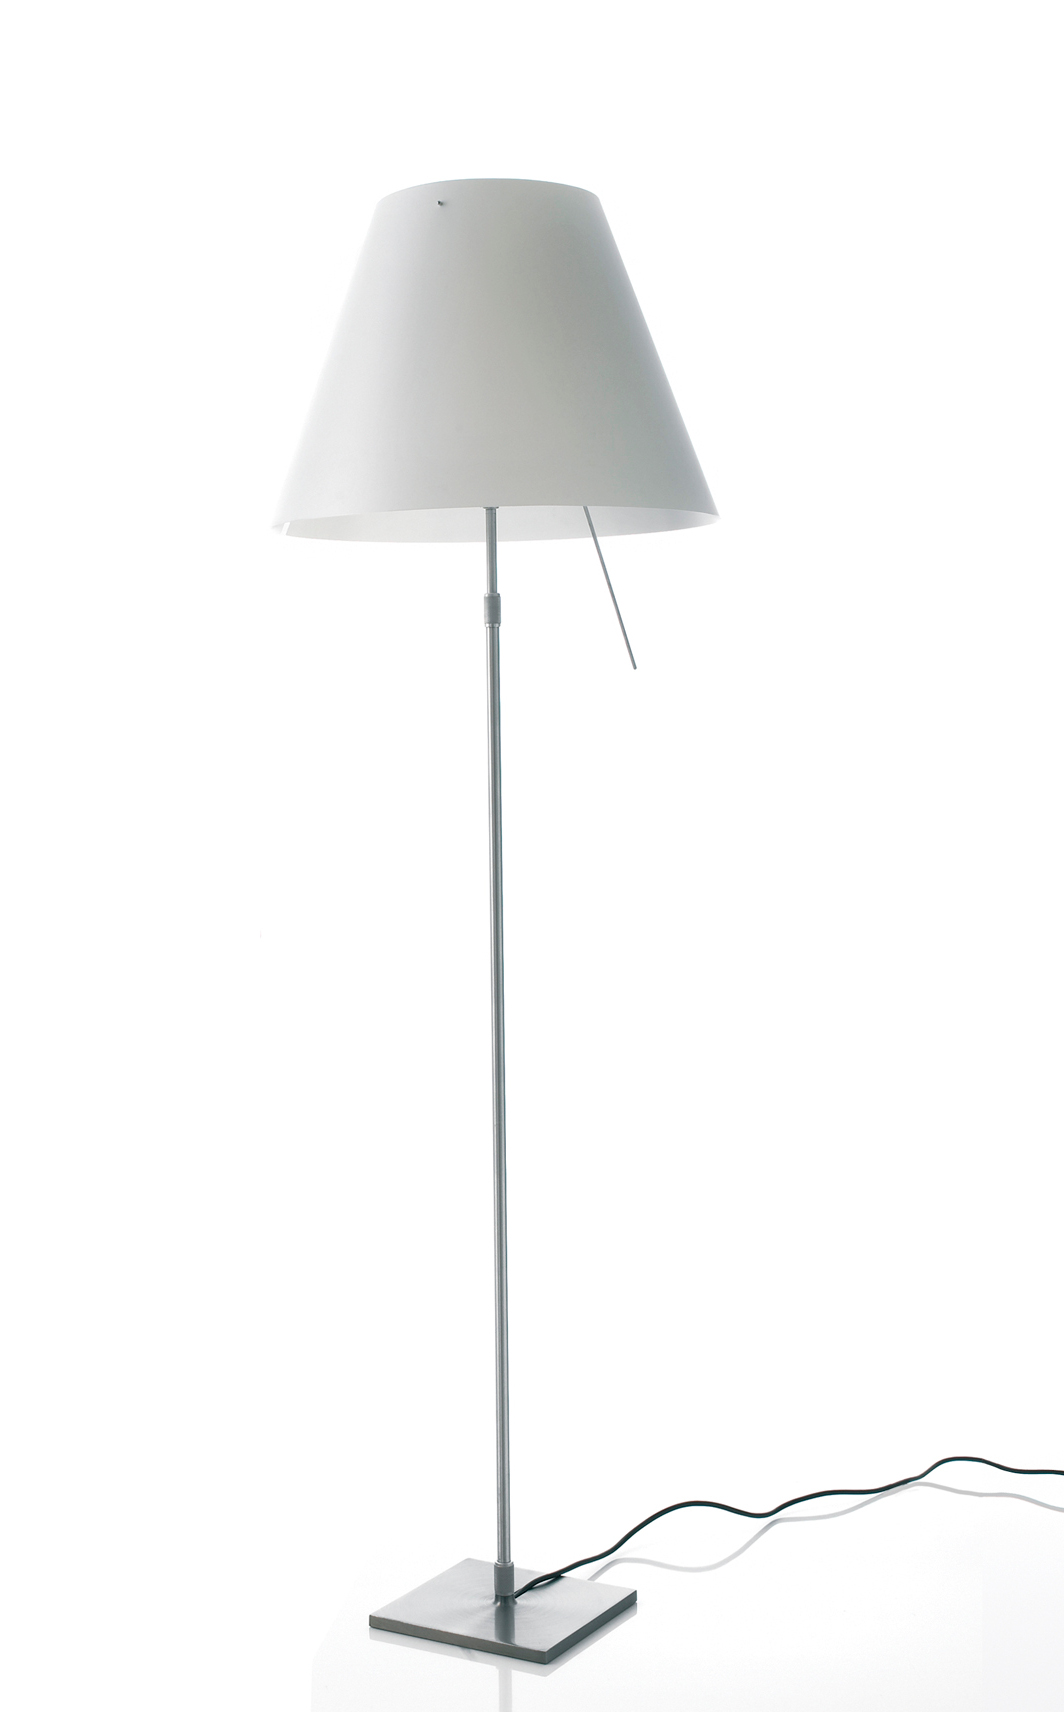 Costanza LED (Solo Structure) Lamp Pendant Lamp Up/down dimmable with wall control without lampshade - steel chromed